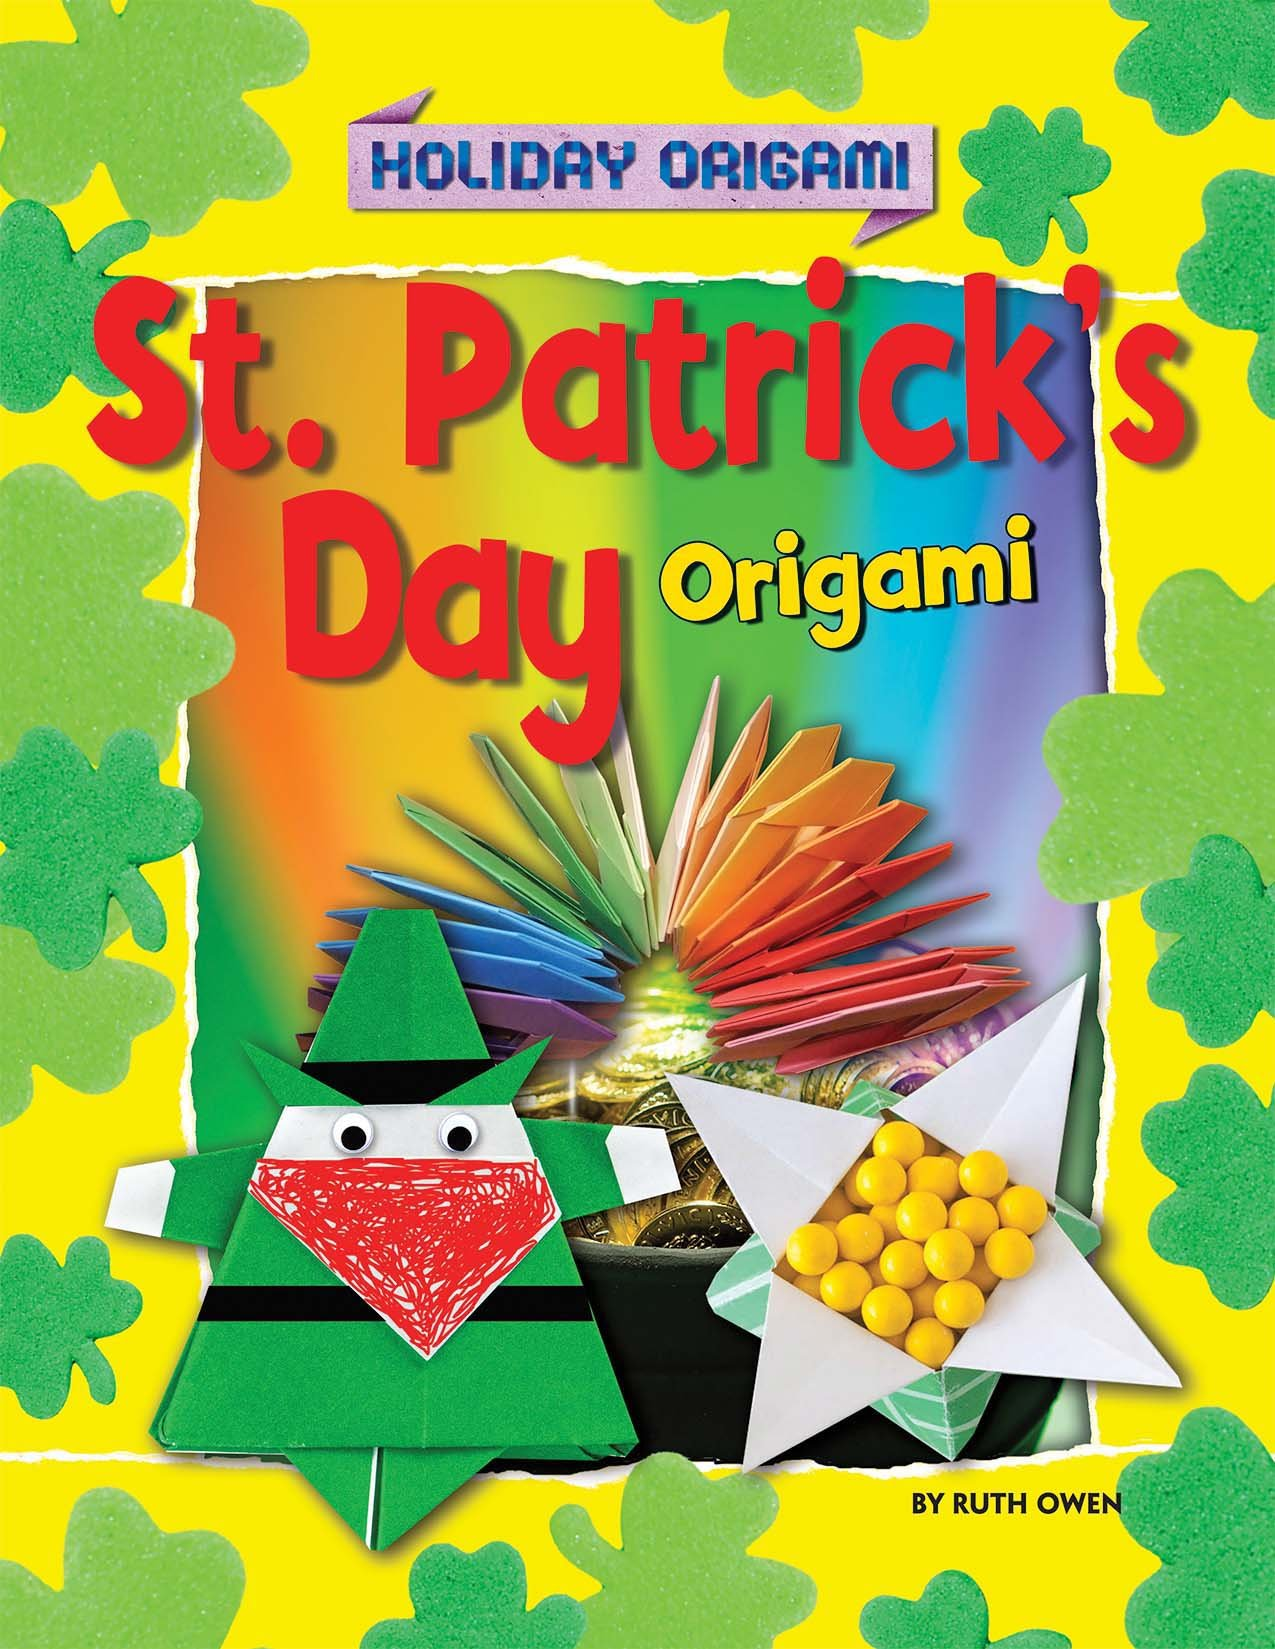 St. Patrick's Day Origami (Holiday Origami)